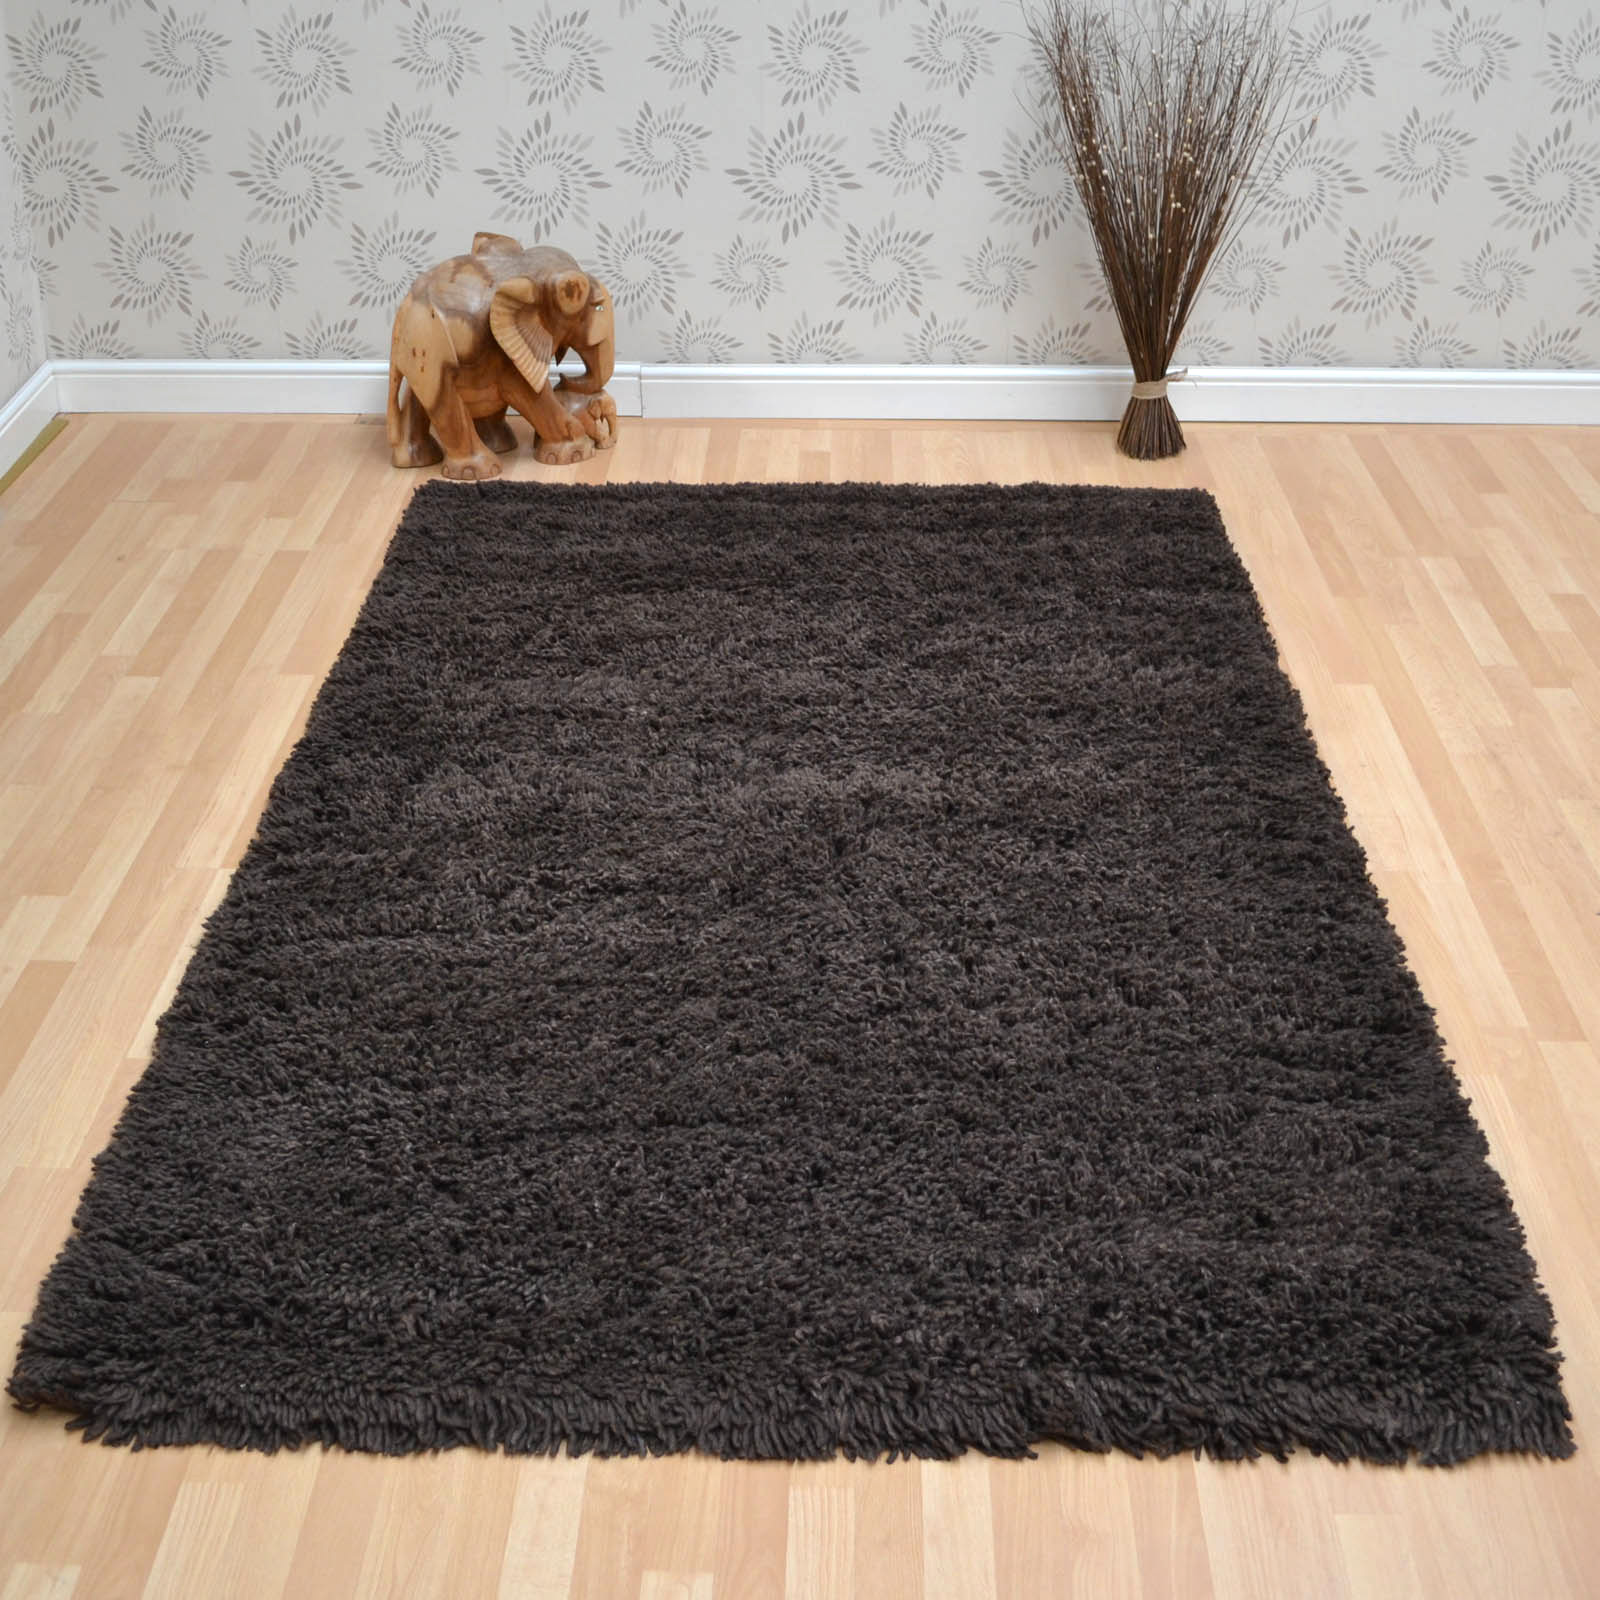 Arctic Shaggy Wool Rugs Tan 20